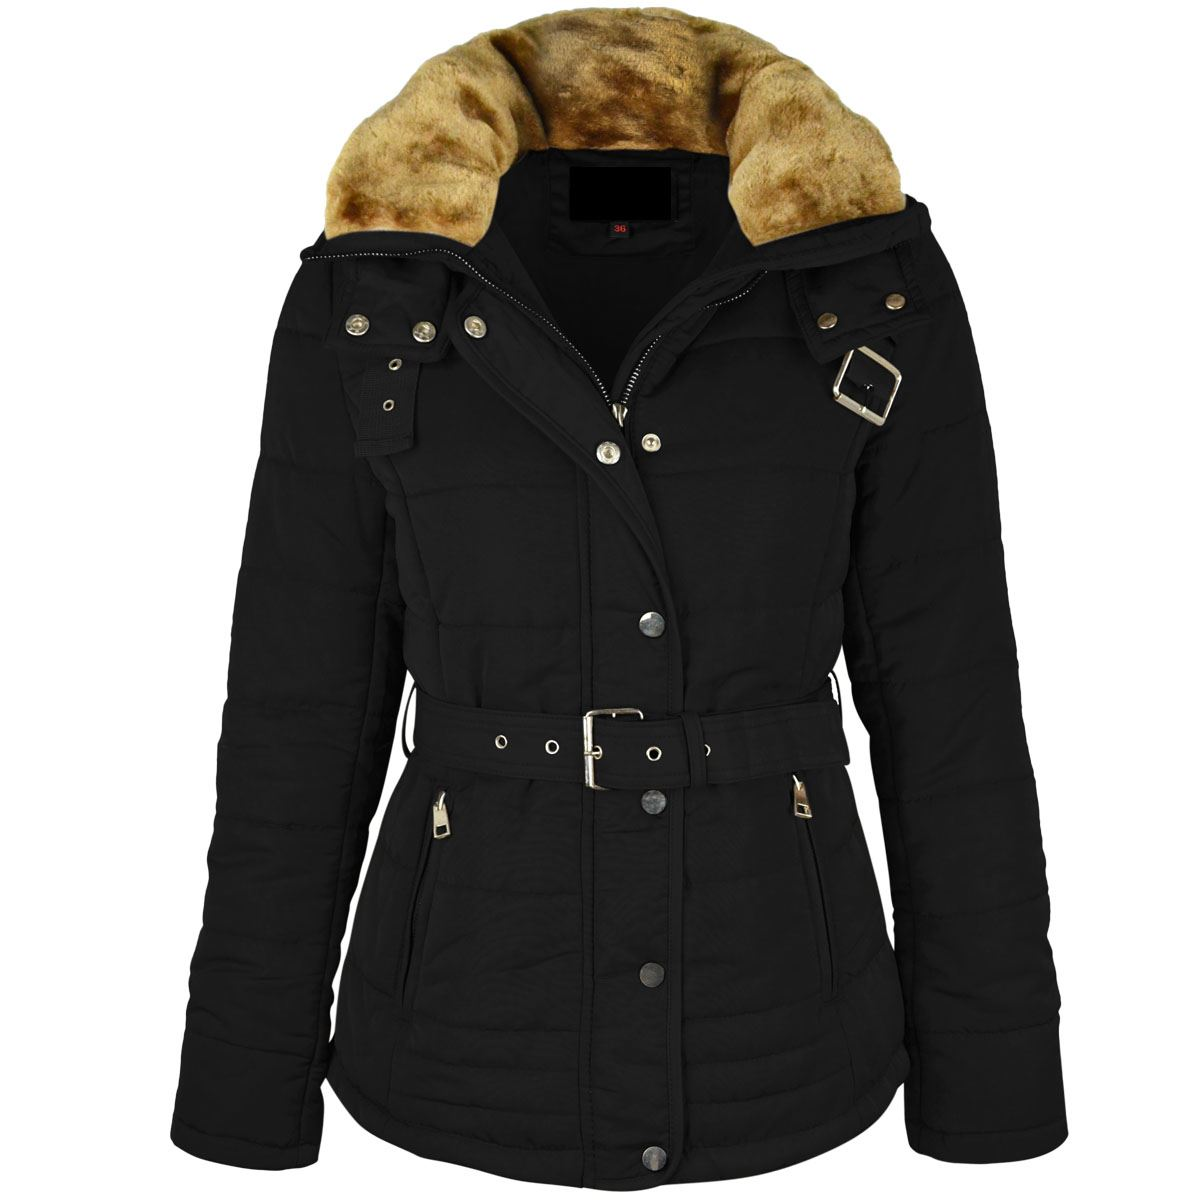 Womens Ladies Winter Coat Puffer Faux Fur Hooded Belted ...